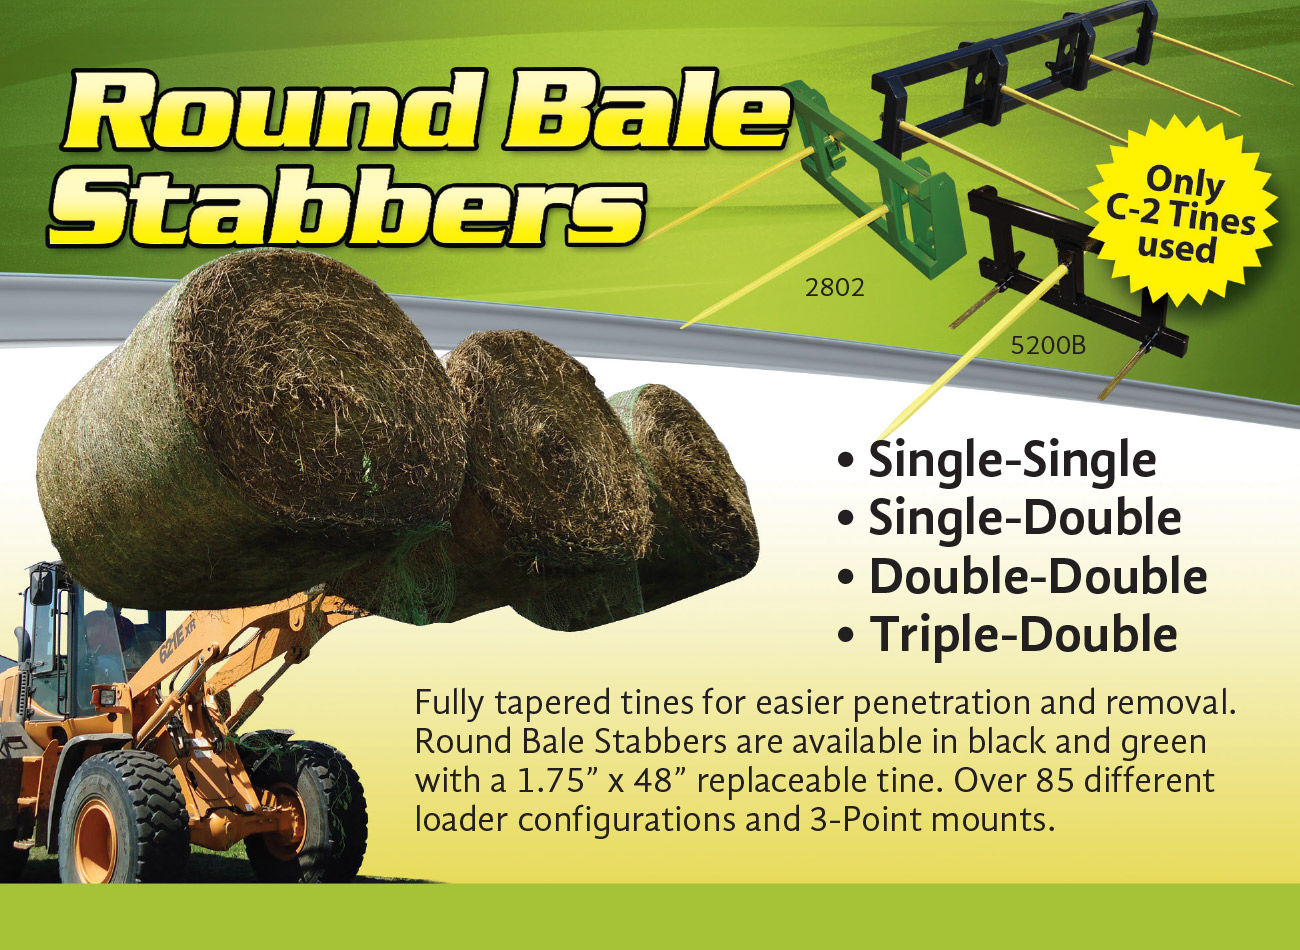 Round Bale Stabbers